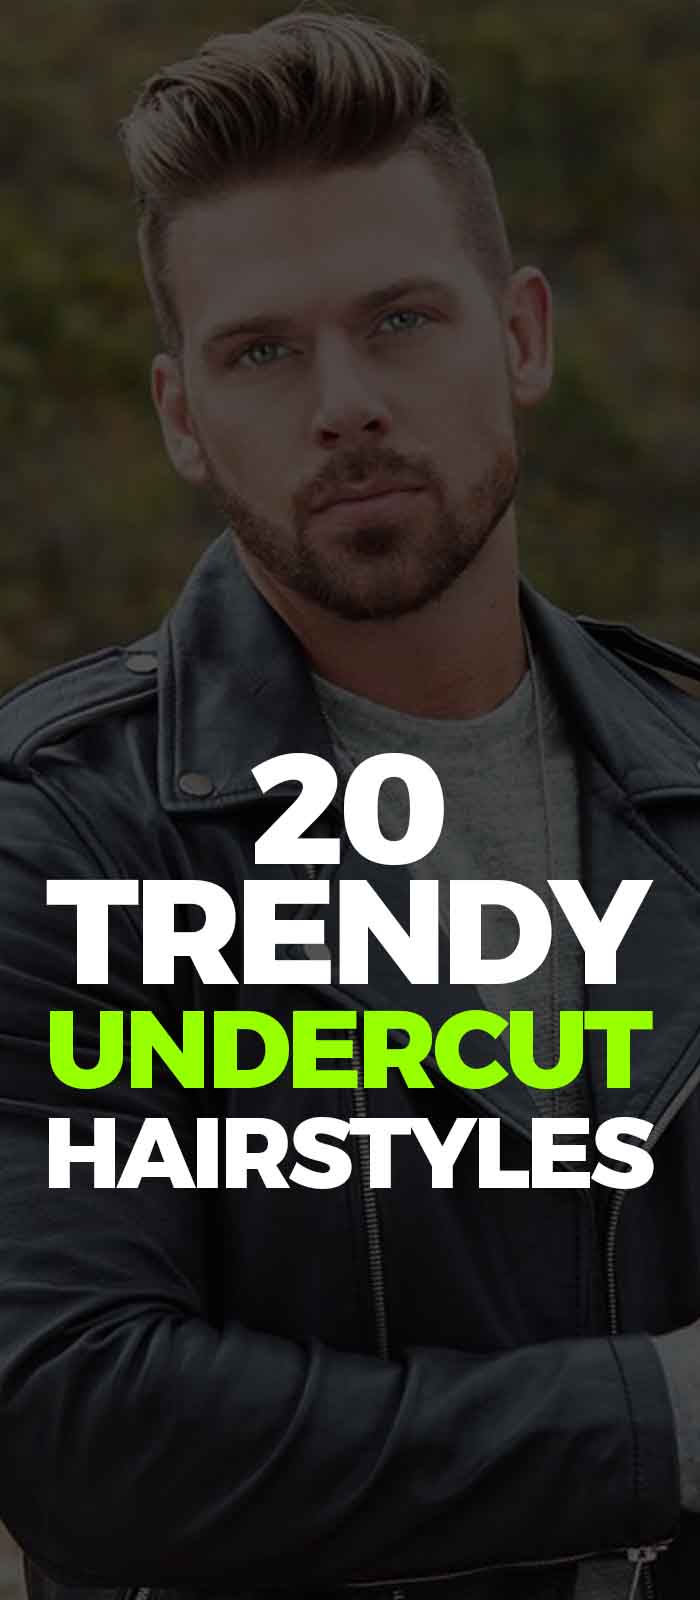 20 Trendy Undercut Hairstyles